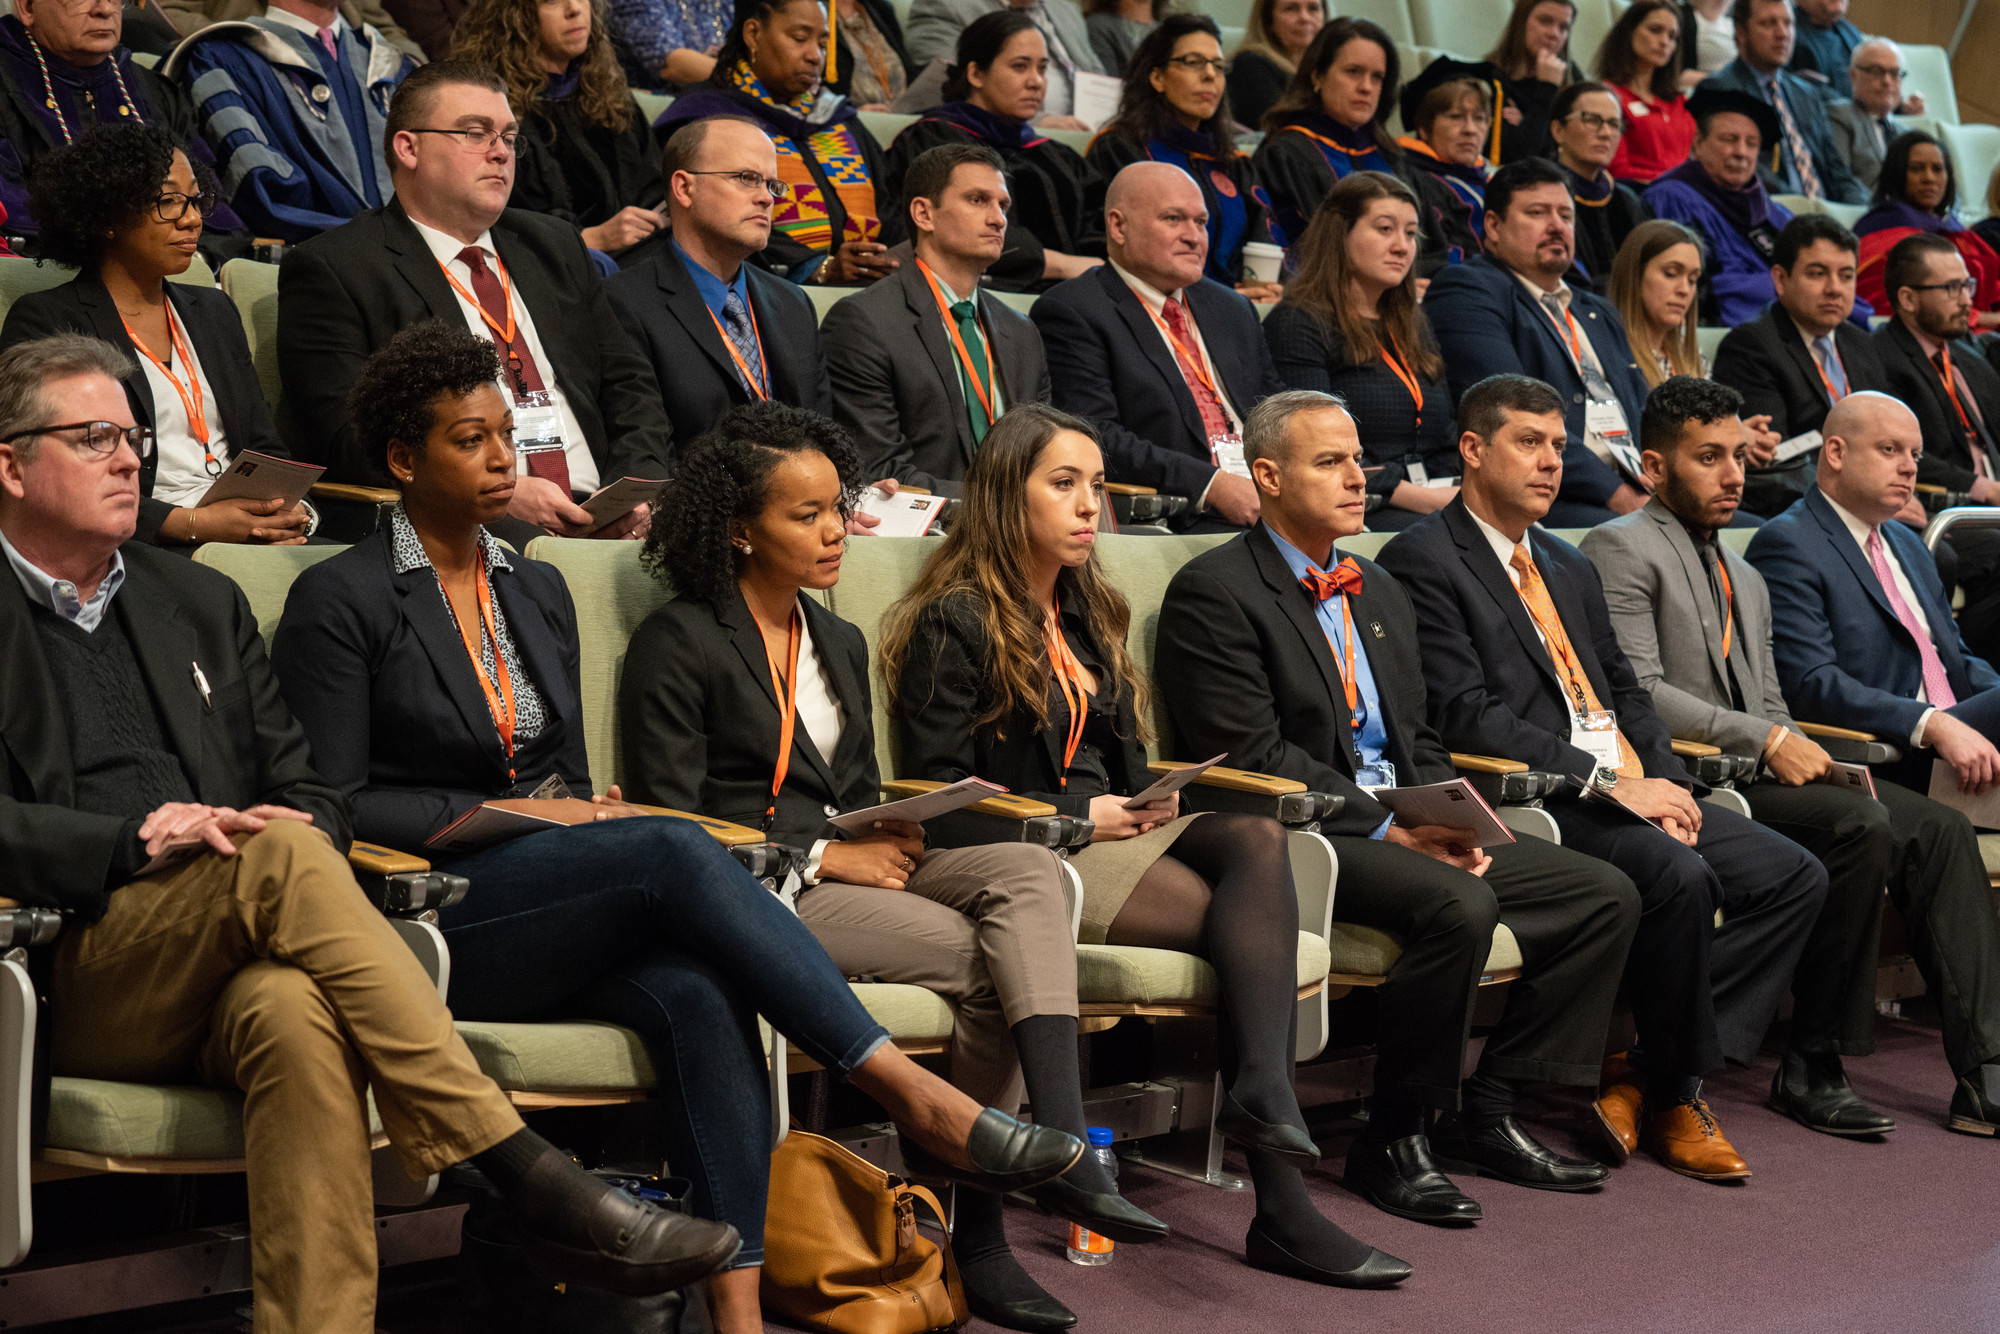 The inaugural JDinteractive class attending the Jan. 7 convocation ceremony in the Melanie Gray Ceremonial Courtroom and listening to remarks by Assistant U.S. Attorney for the Northern District of New York Adam J. Katz L'04.